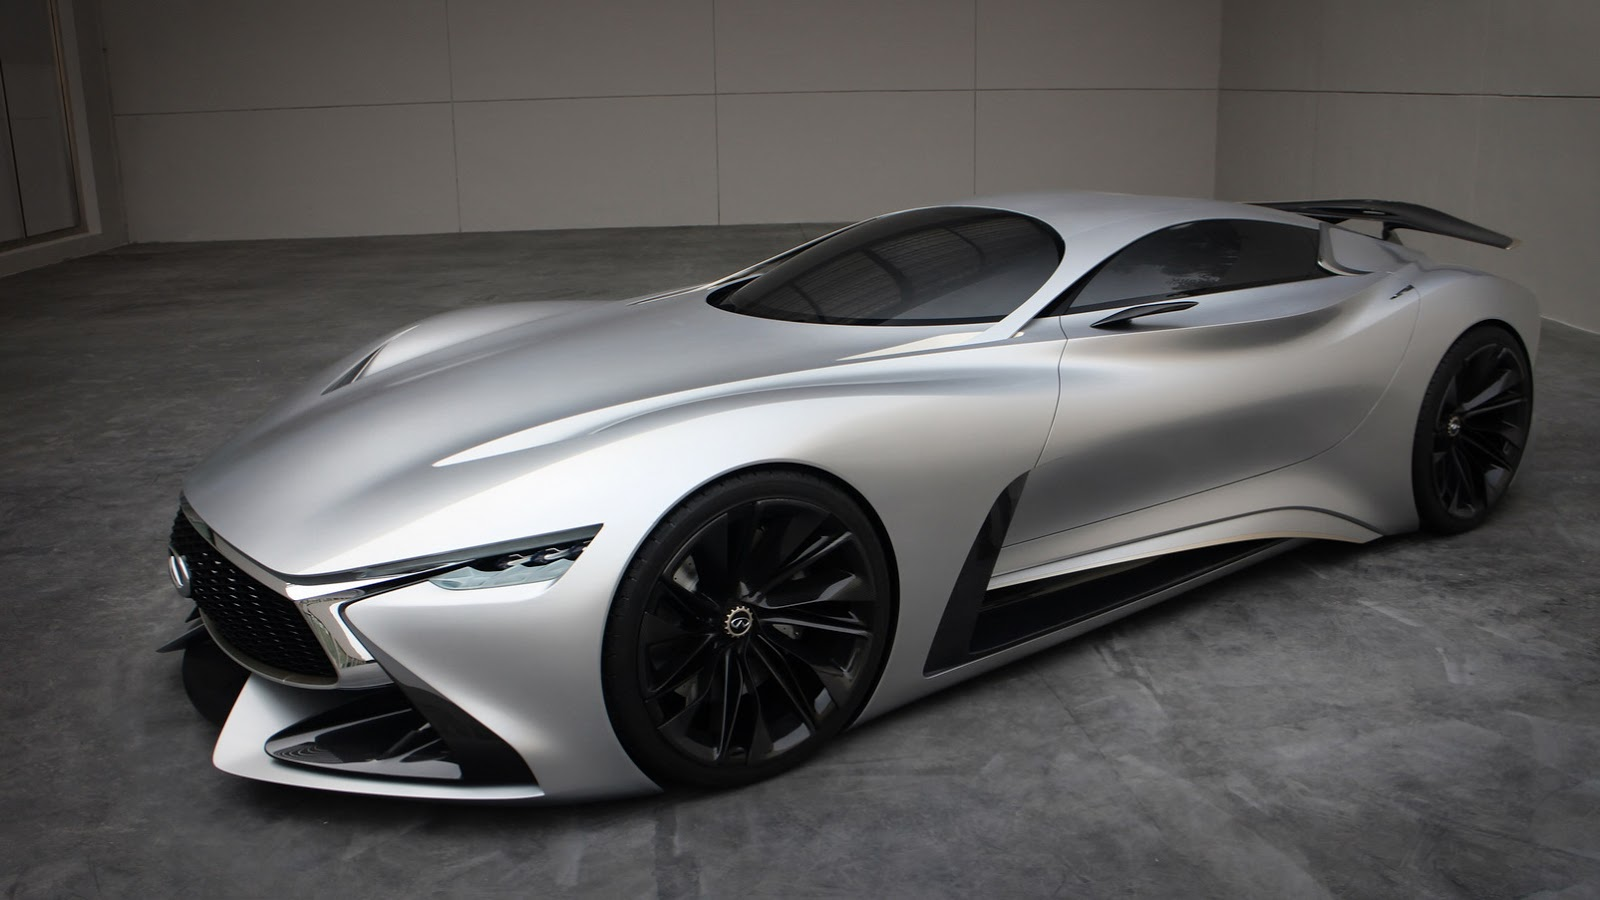 Automotivegeneral 2015 Bmw Vision Gran Turismo Wallpapers